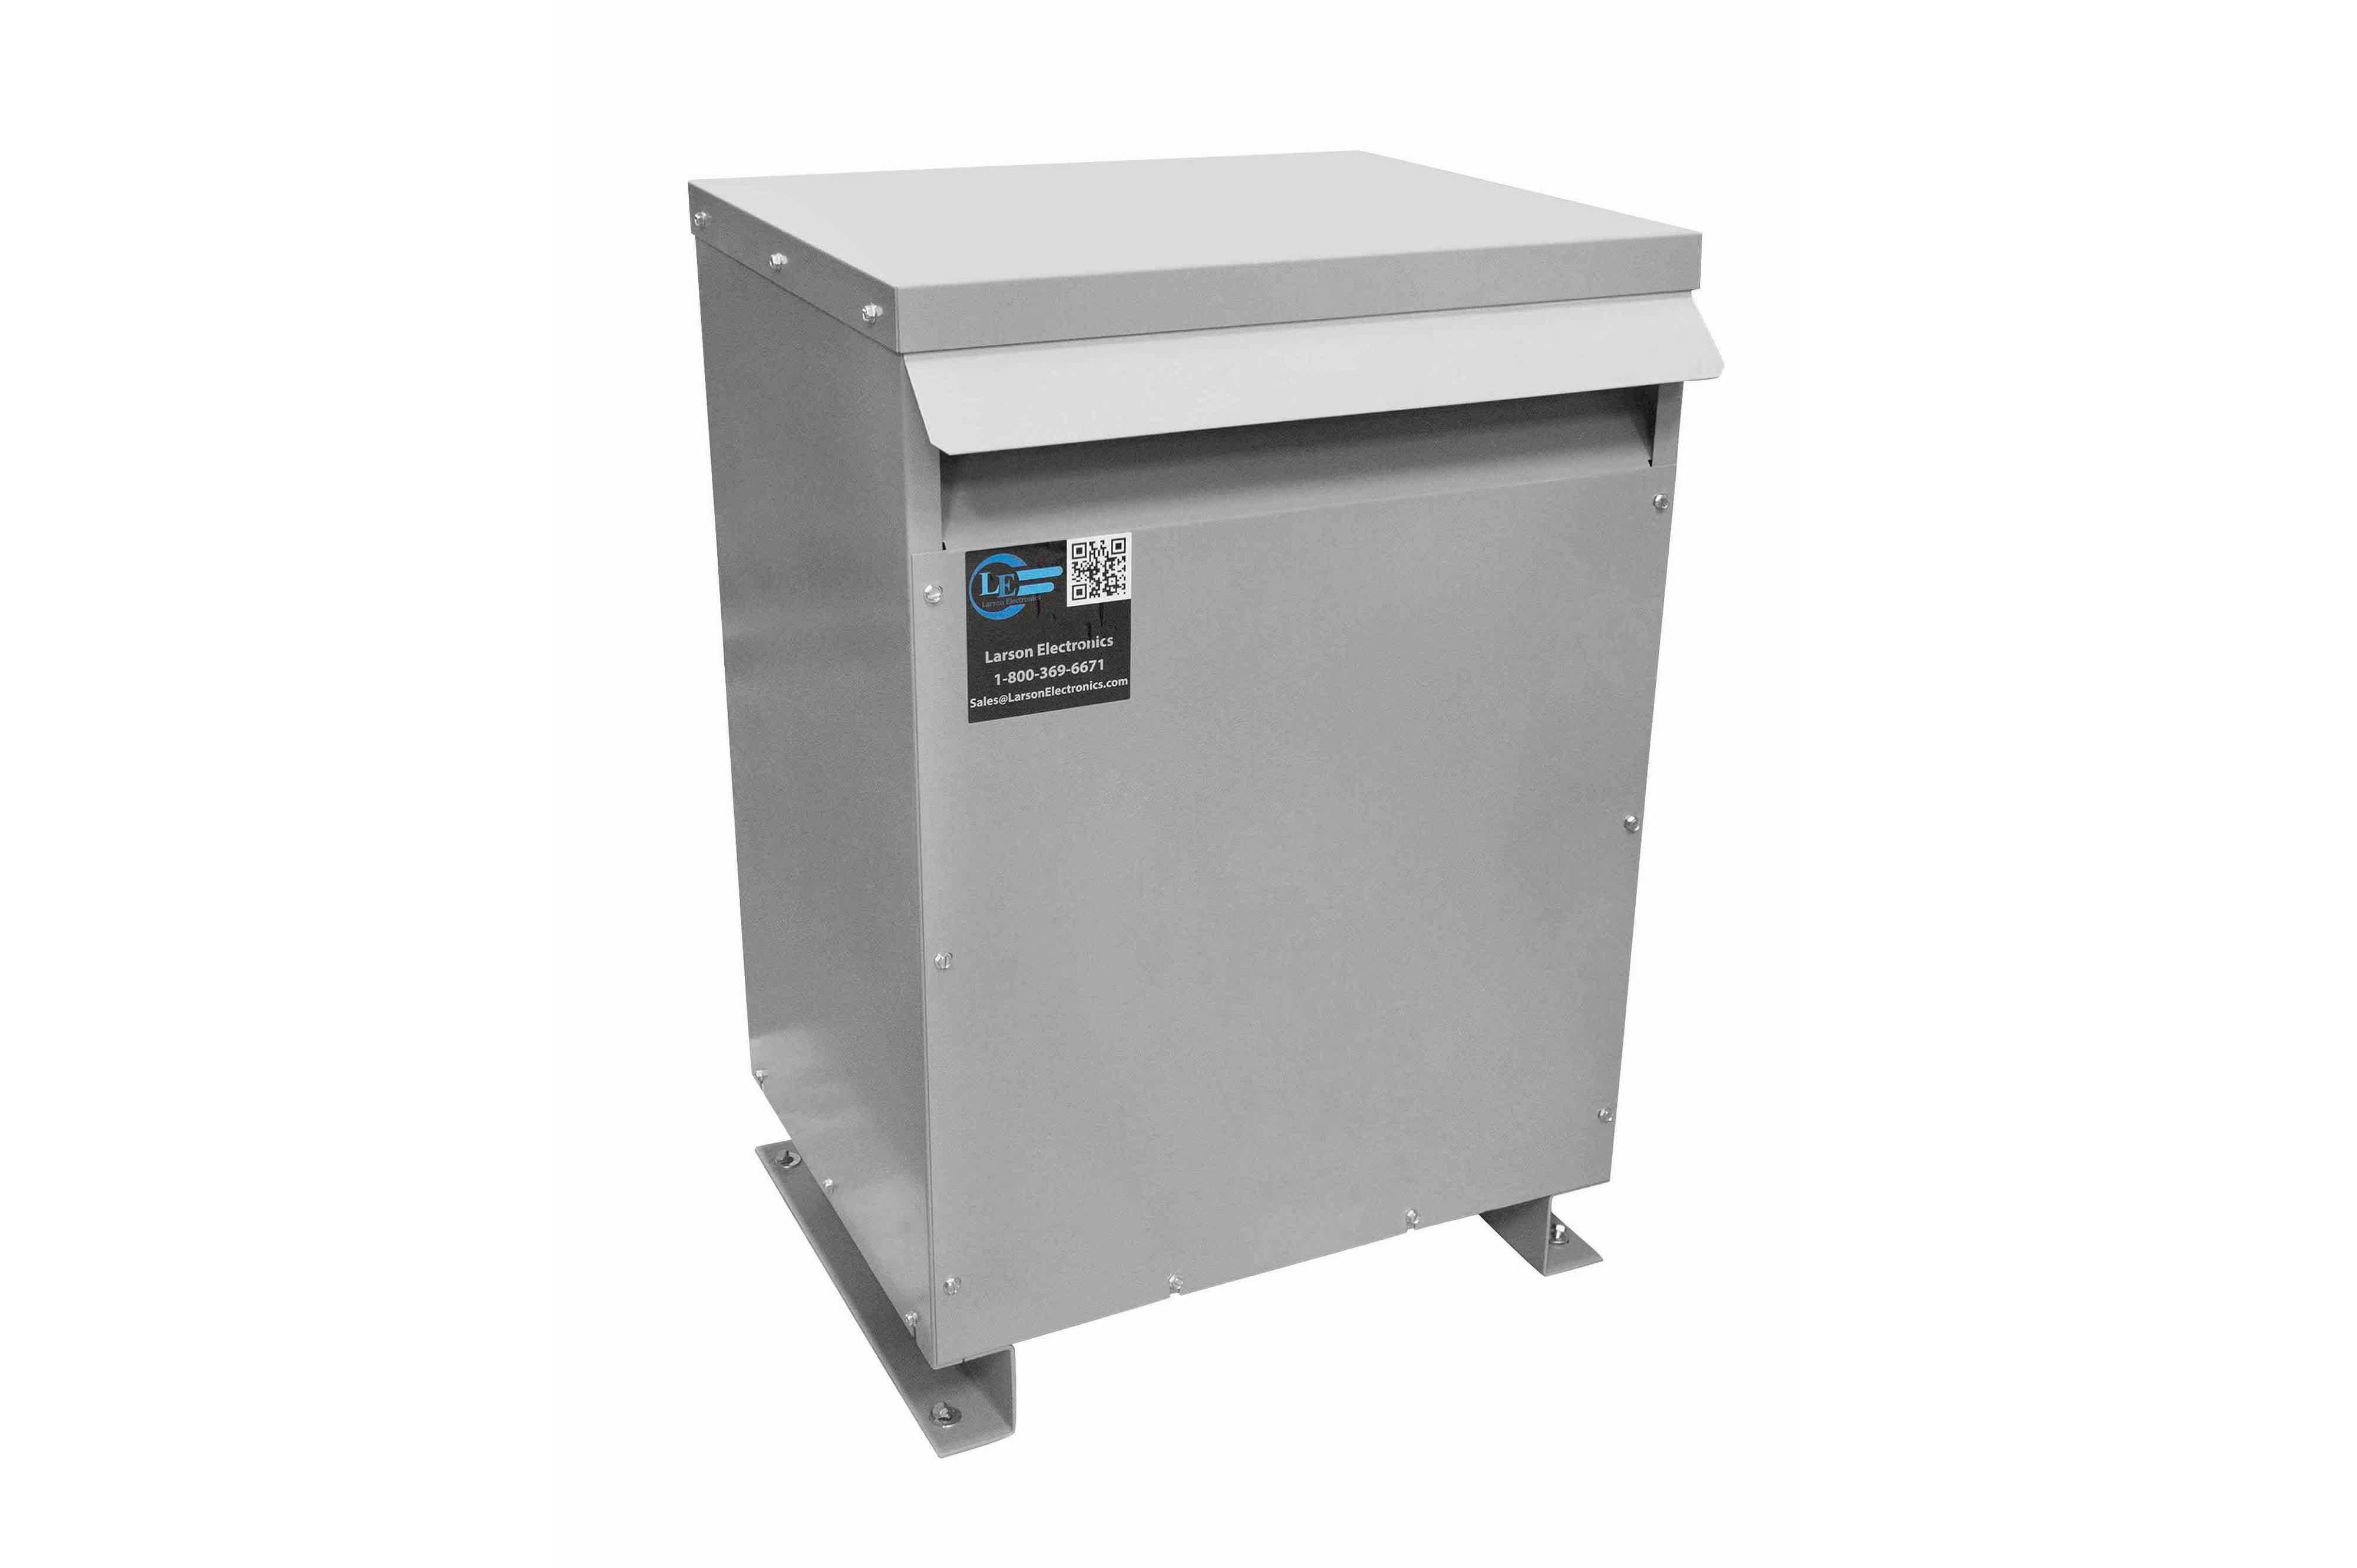 30 kVA 3PH Isolation Transformer, 440V Wye Primary, 240V/120 Delta Secondary, N3R, Ventilated, 60 Hz